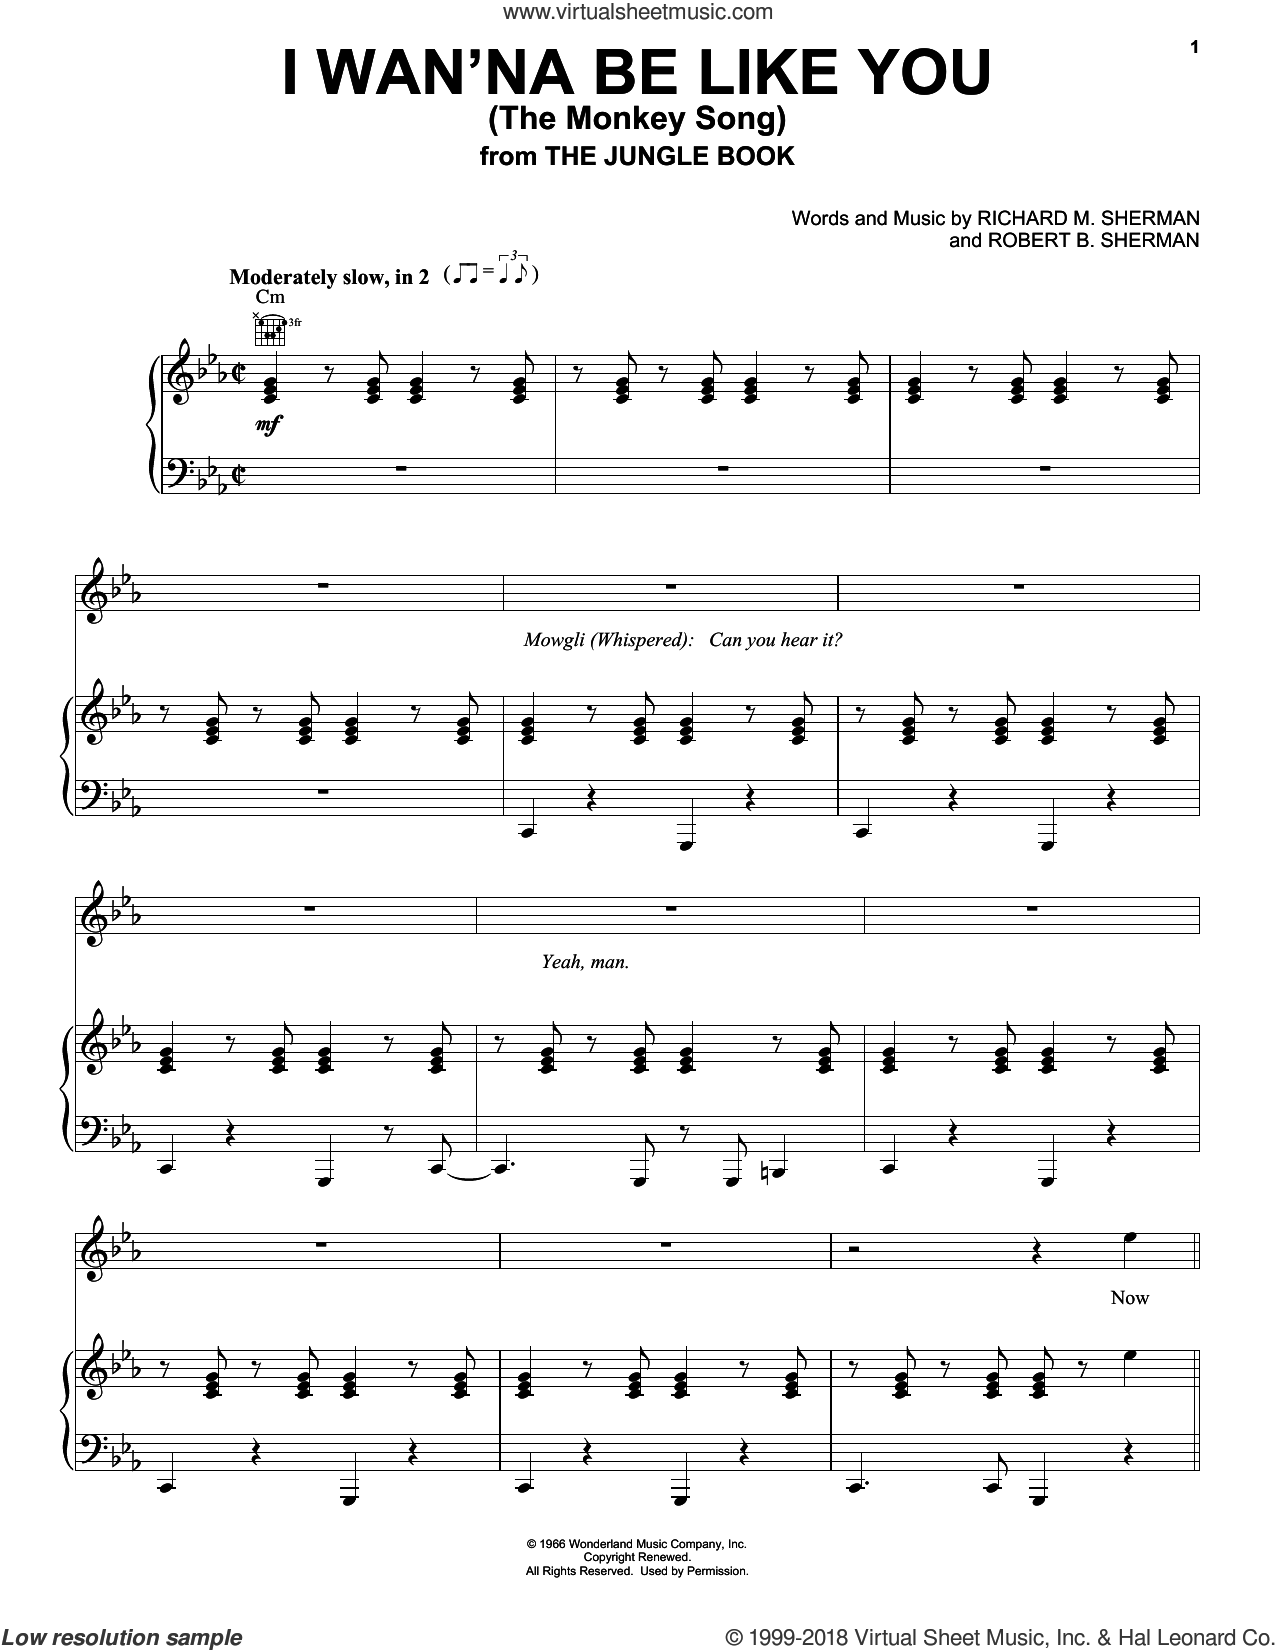 I Wan'na Be Like You (The Monkey Song) sheet music for voice, piano or guitar by Sherman Brothers, Richard M. Sherman and Robert B. Sherman, intermediate skill level